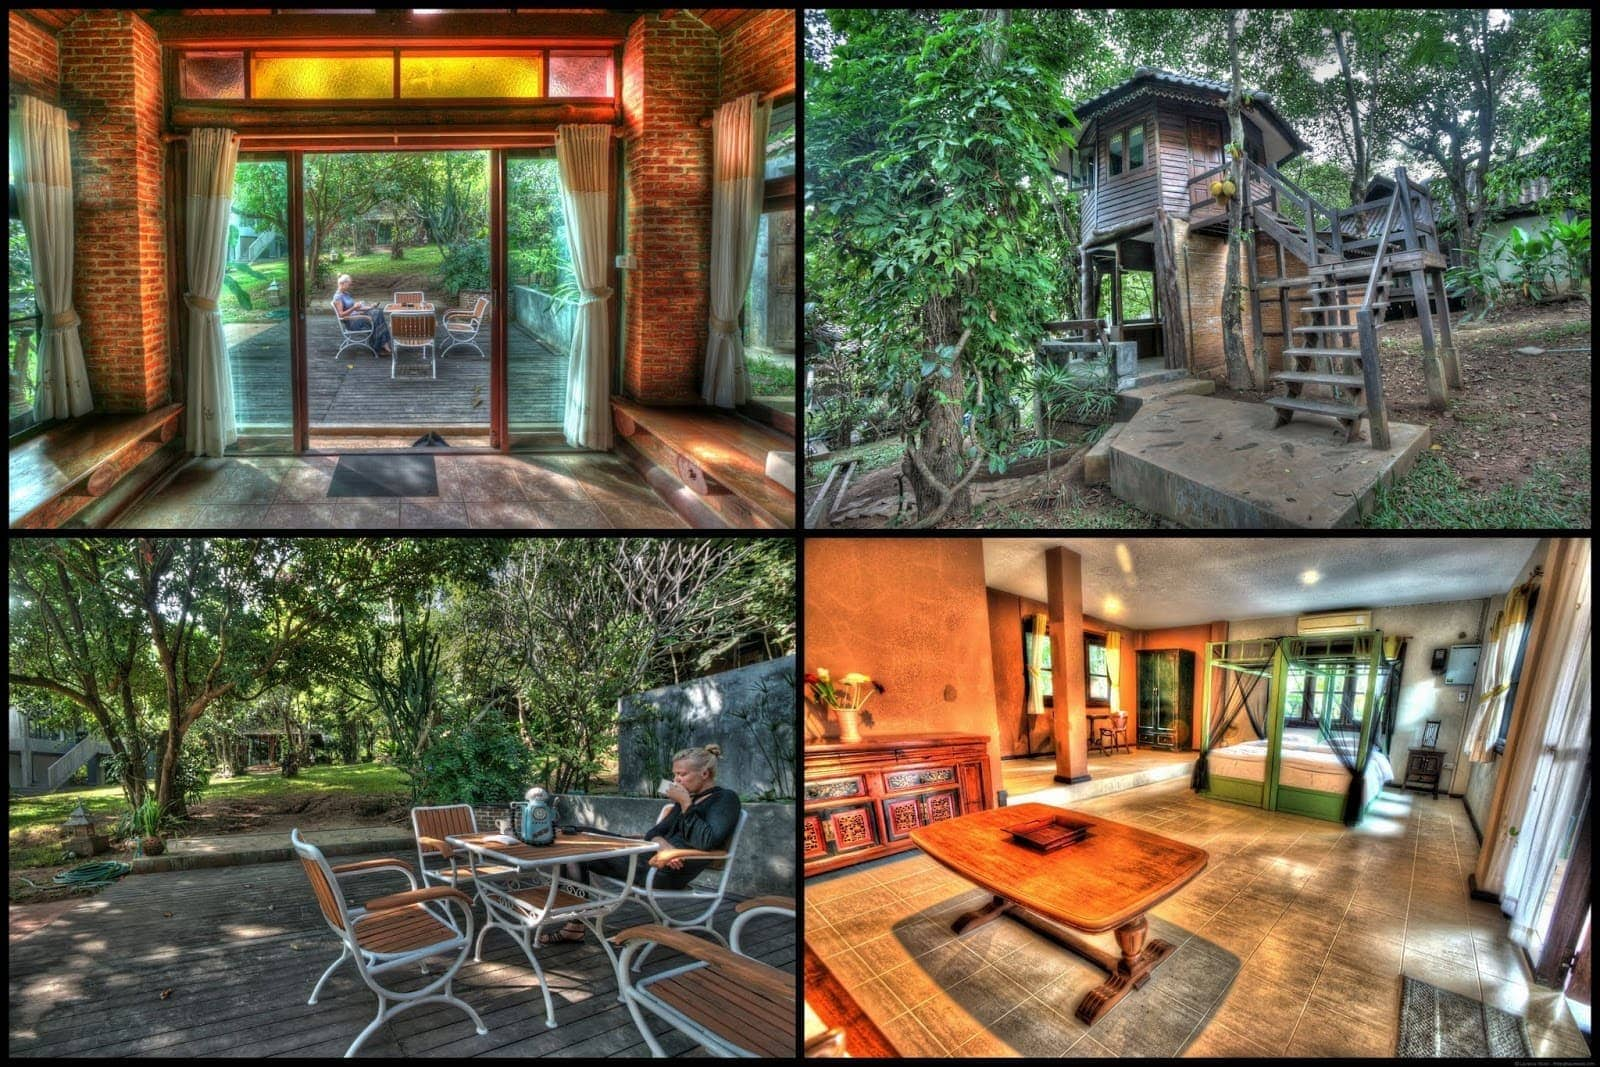 Chiang Mai Viva city homestay review collage